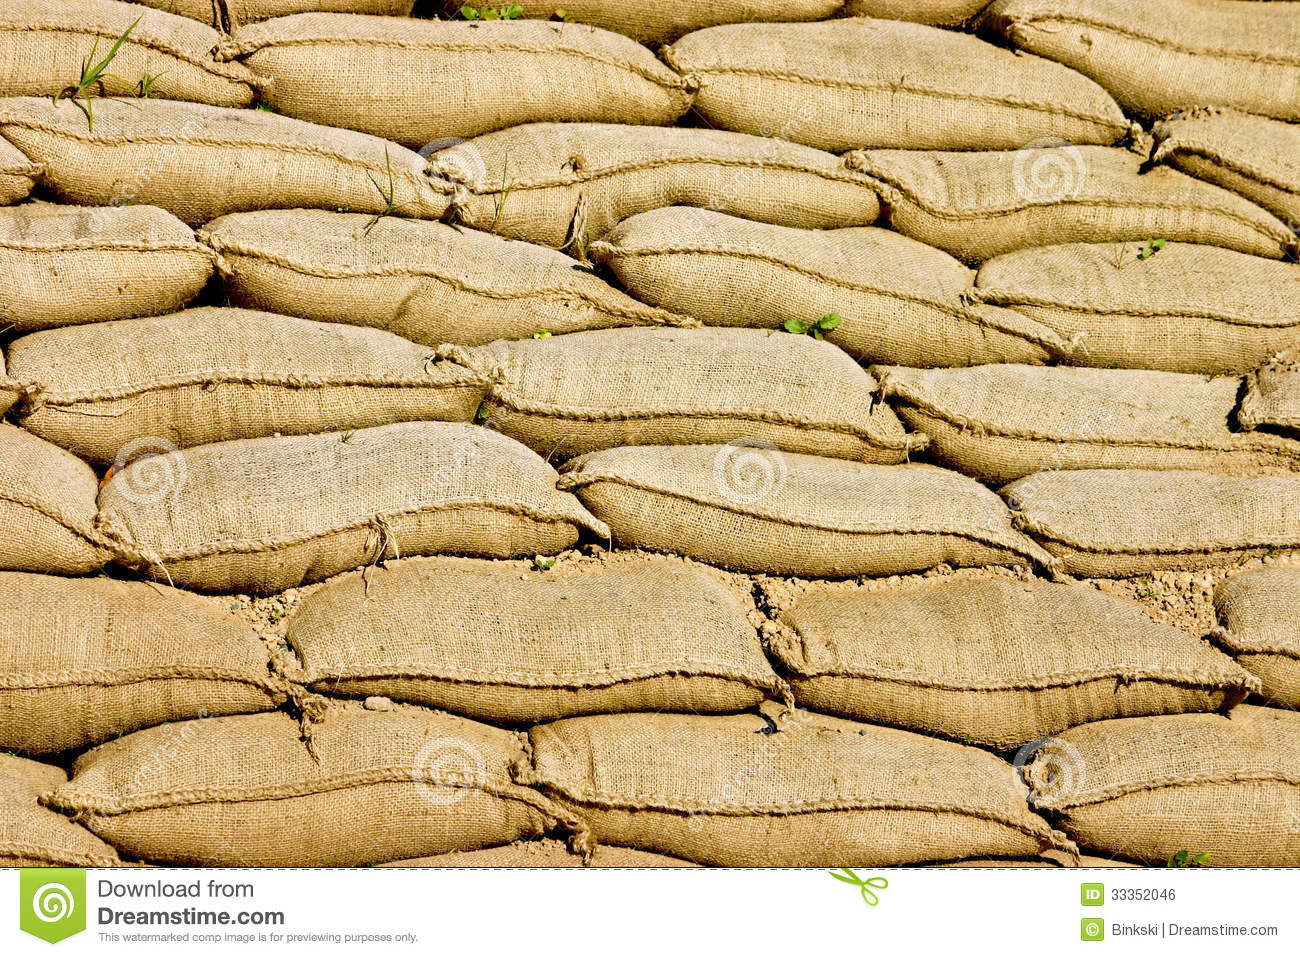 Royalty Free Stock Photos Triangle Windows Tile Roof Isolated White Image14542248 further Royalty Free Stock Photo Money House Image4711615 also Royalty Free Stock Photography Old Tvs Pile Non Working Close Up Image31884477 further Royalty Free Stock Image Sandbags Pile Wall Image33352046 also Royalty Free Stock Photos Roof Tiles Installation Image21301658. on pile house plans